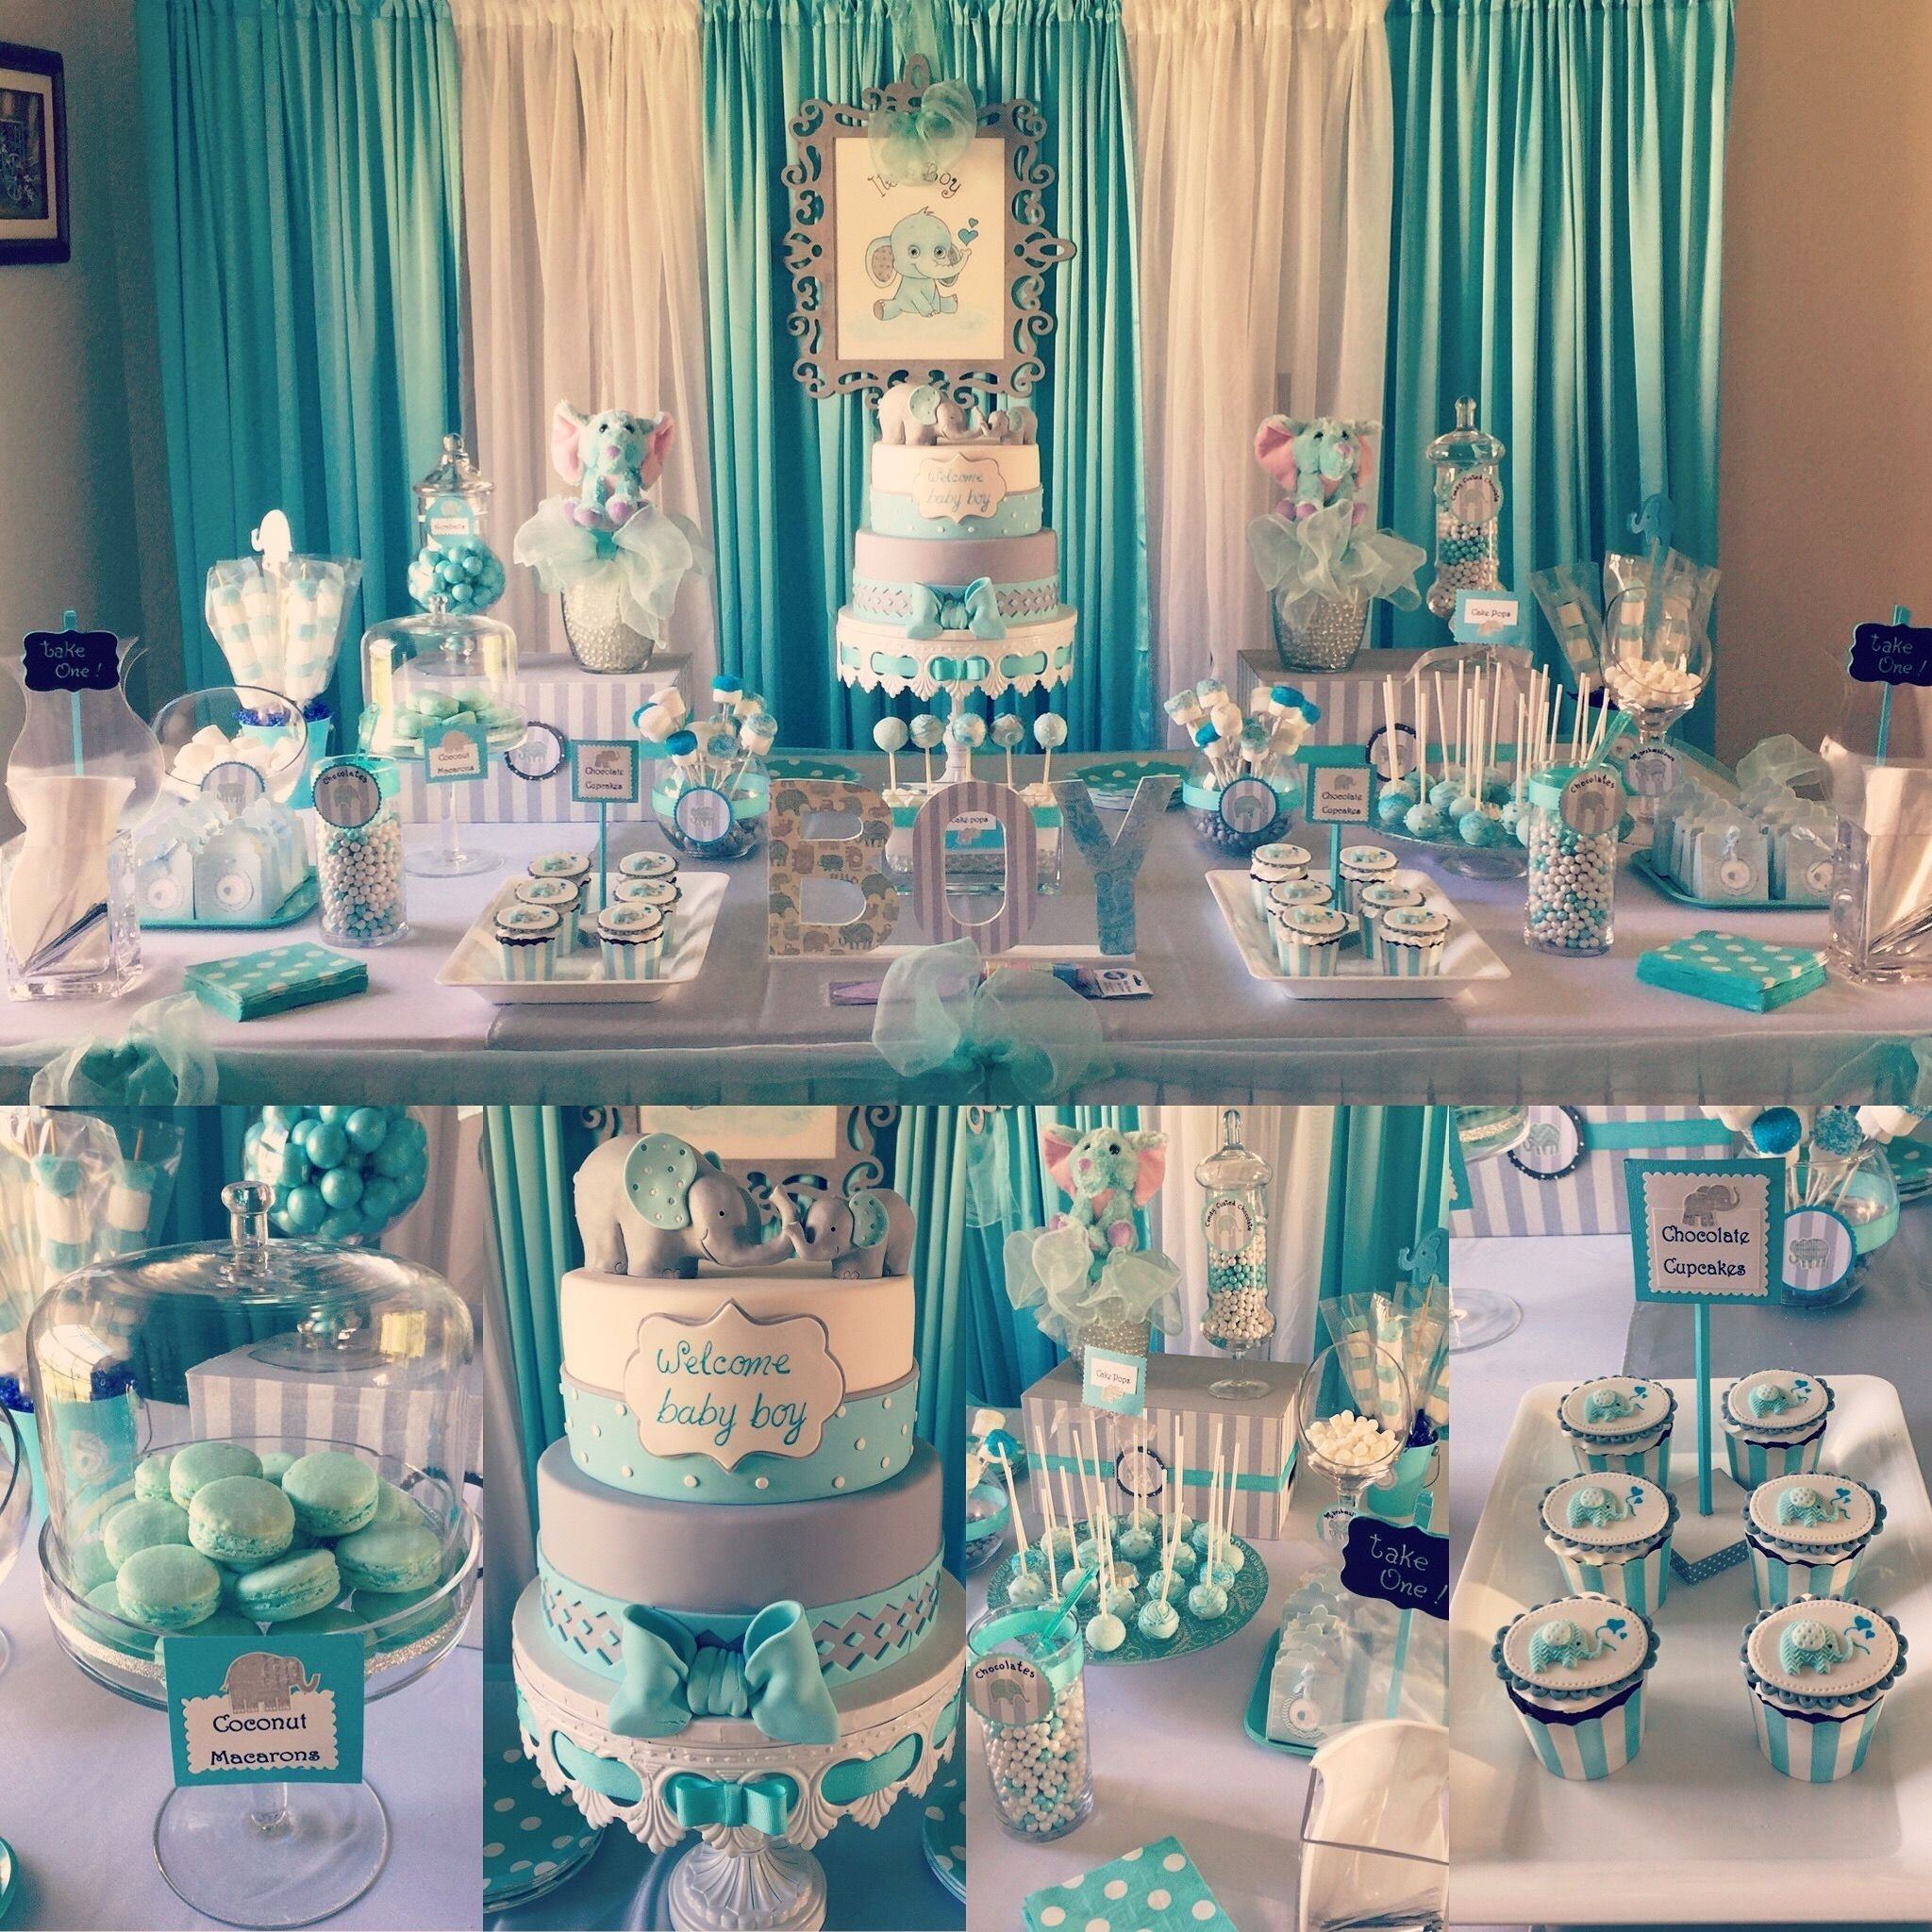 10 Fabulous Boy Baby Shower Theme Ideas unique gender reveal party ideas that wont empty your wallet 10 2021